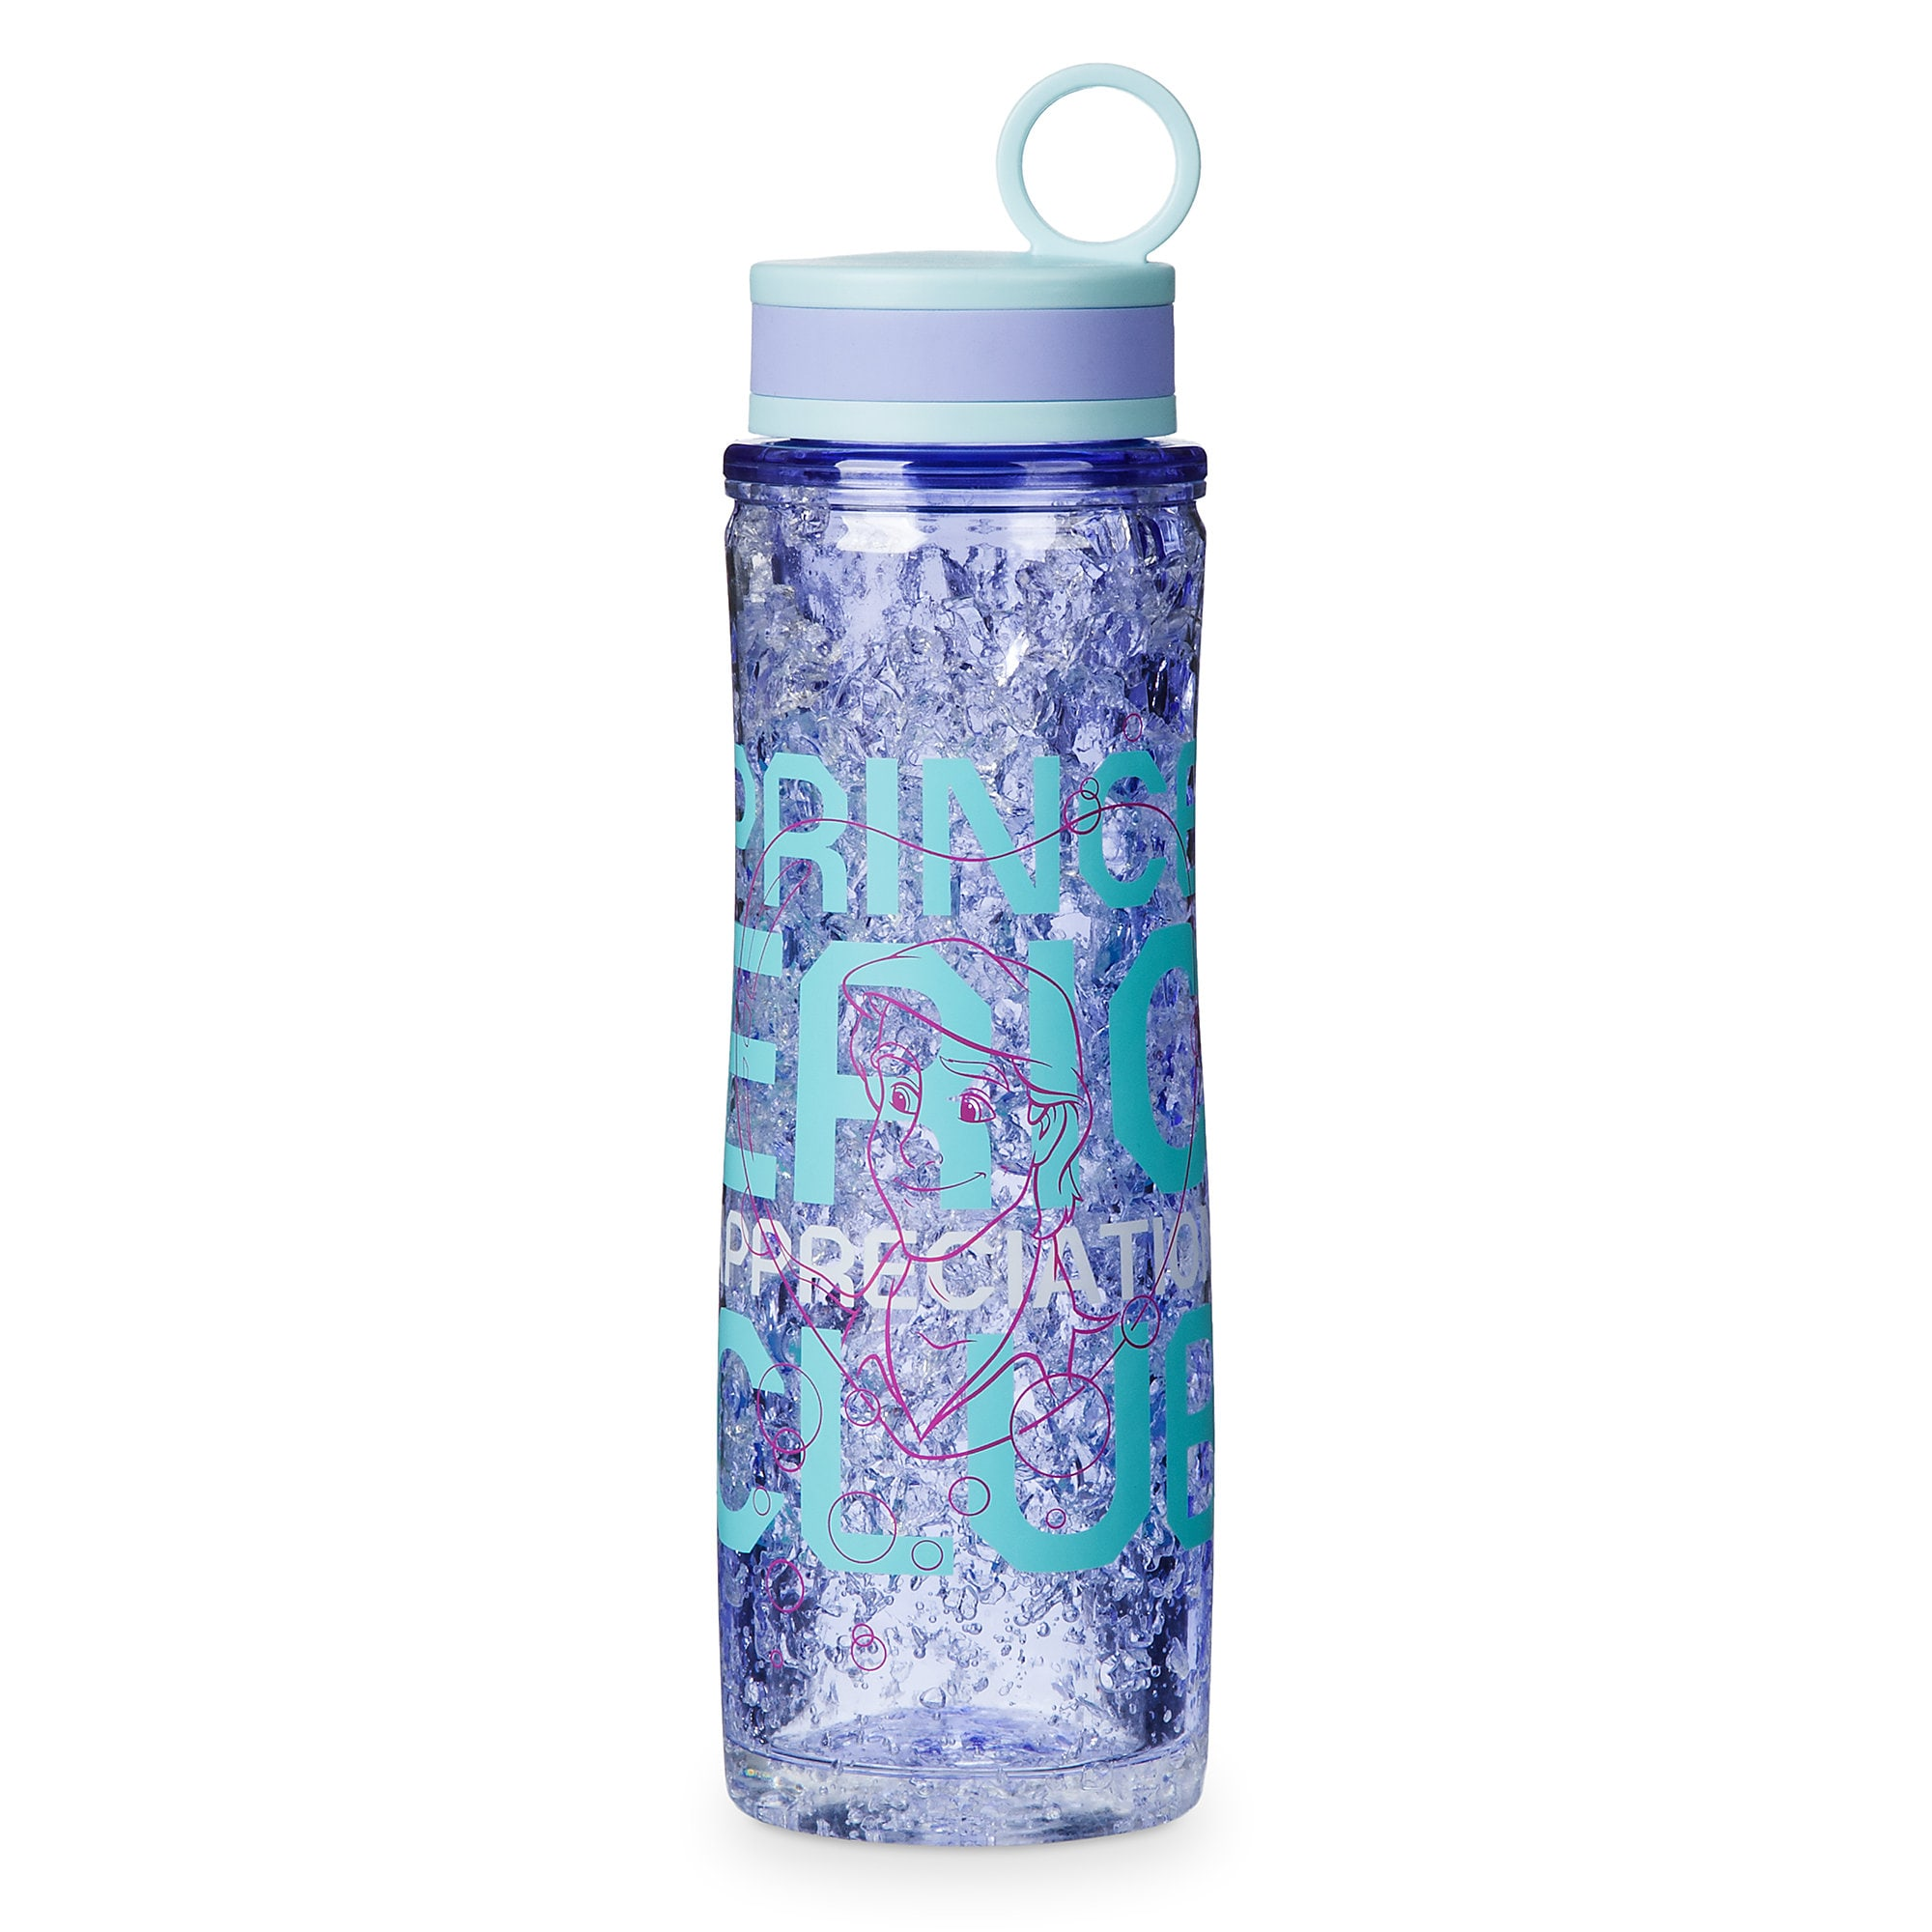 Prince Eric Freezable Travel Water Bottle - Oh My Disney